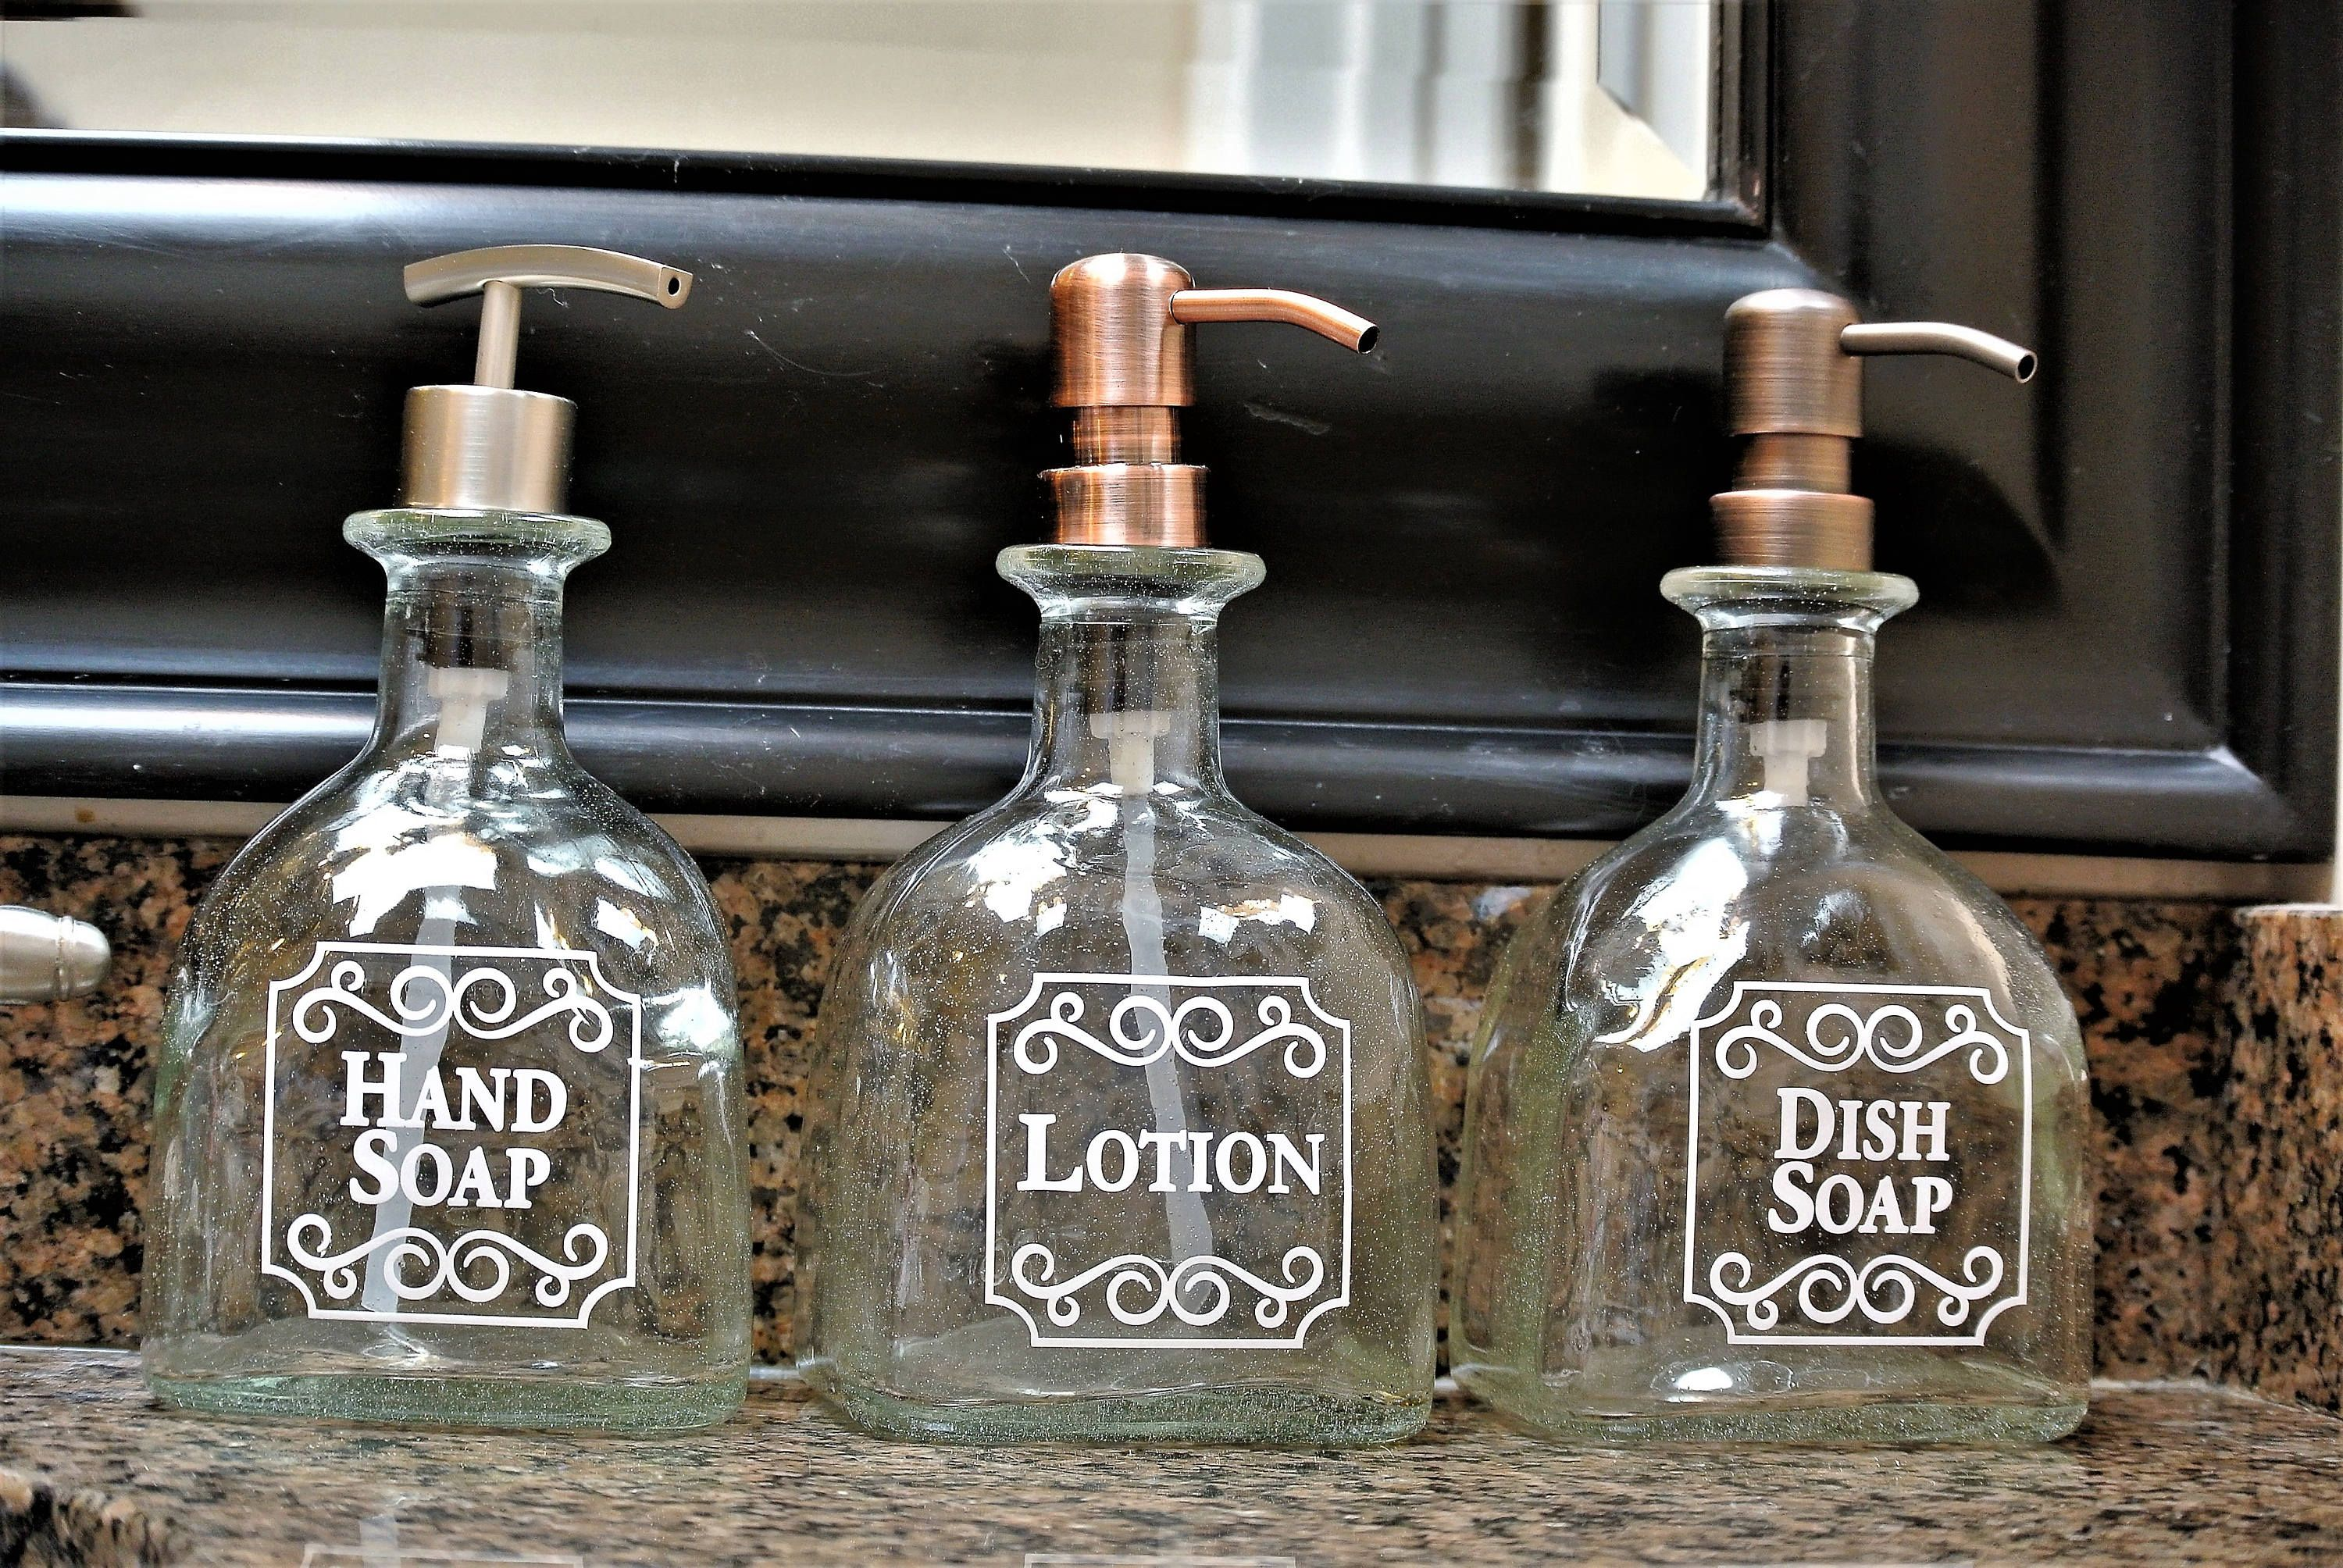 1 Patron Pump Soap Dispenser Gift Patron Bottle Dish Soap